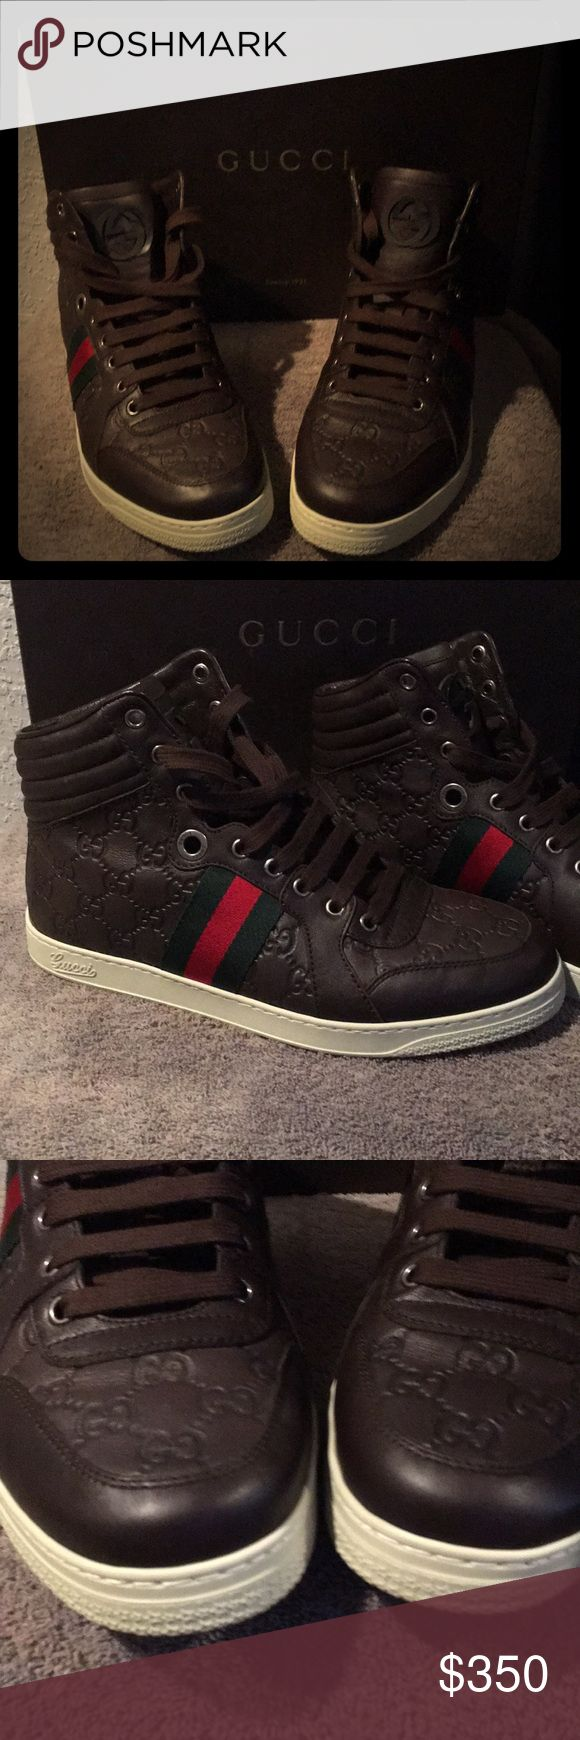 Gucci men sneakers Chocolate Gucci high top sneakers. In excellent condition. Only worn once. The size is a G 07 which is a men's 8 and a 10 in women's. Gucci Shoes Sneakers